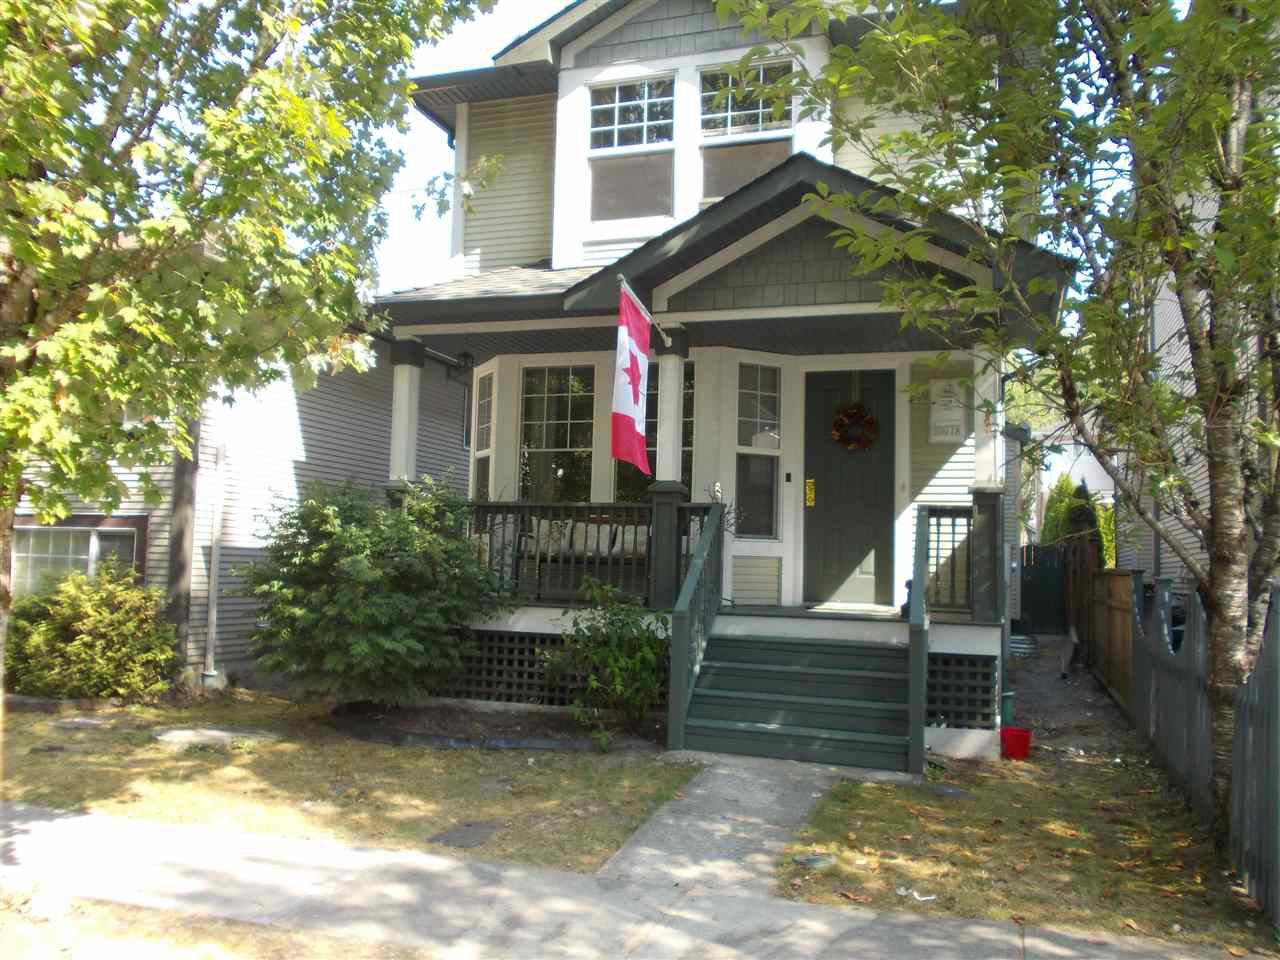 """Main Photo: 10078 243 Street in Maple Ridge: Albion House for sale in """"Albion"""" : MLS®# R2200813"""